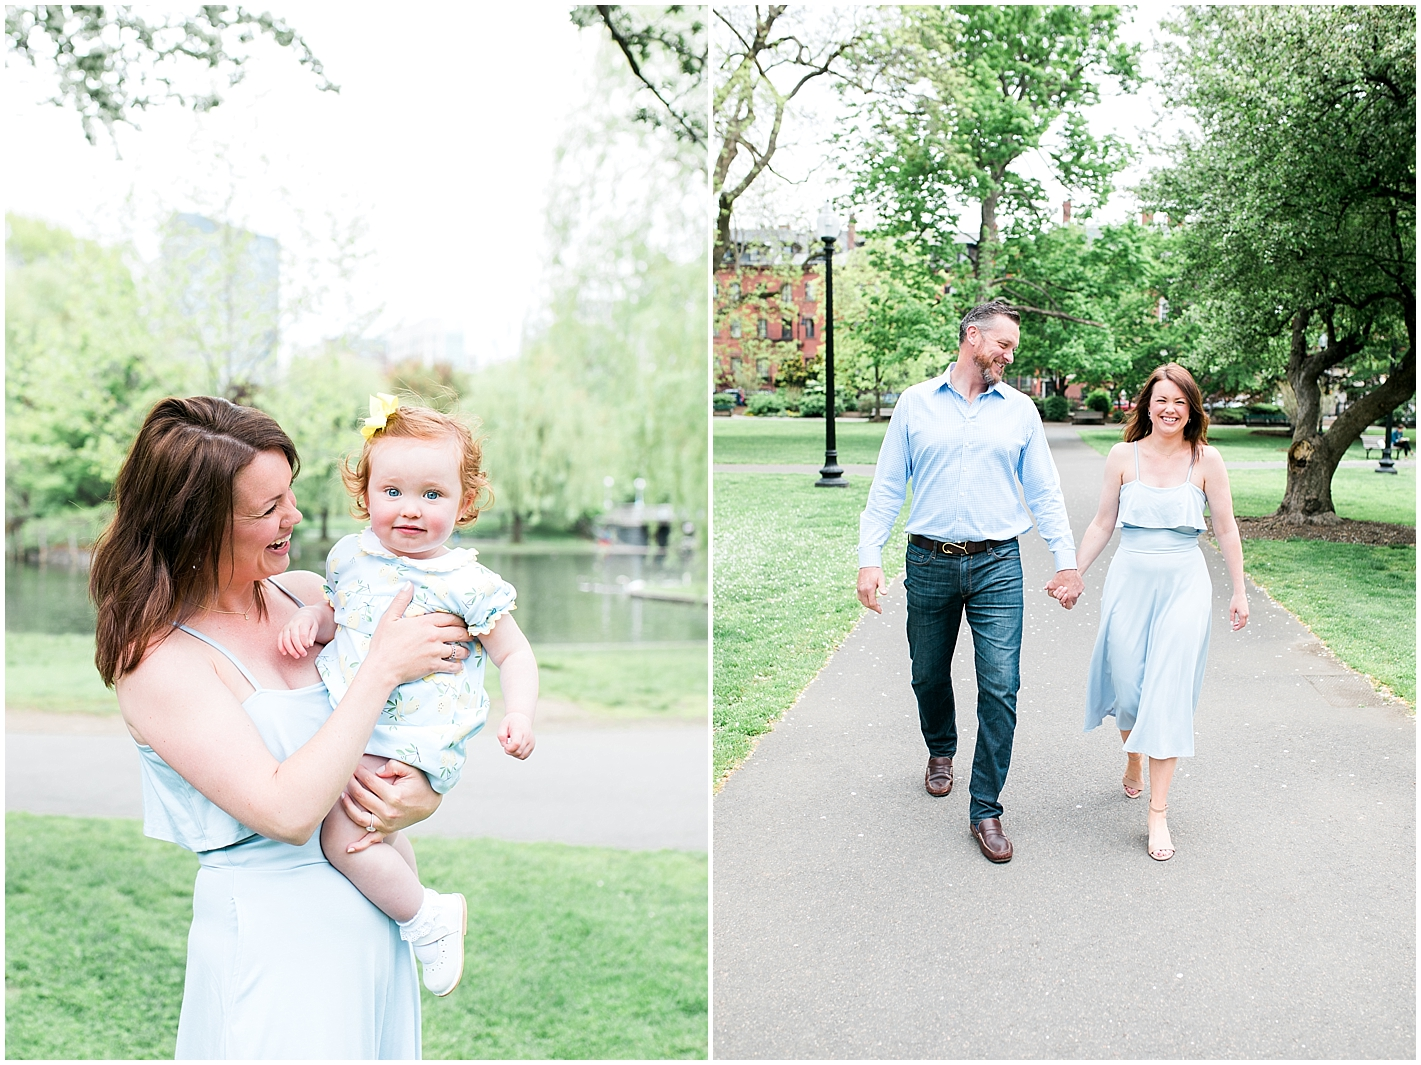 Chase Family Session in Boston by Alyssa Parker Photography